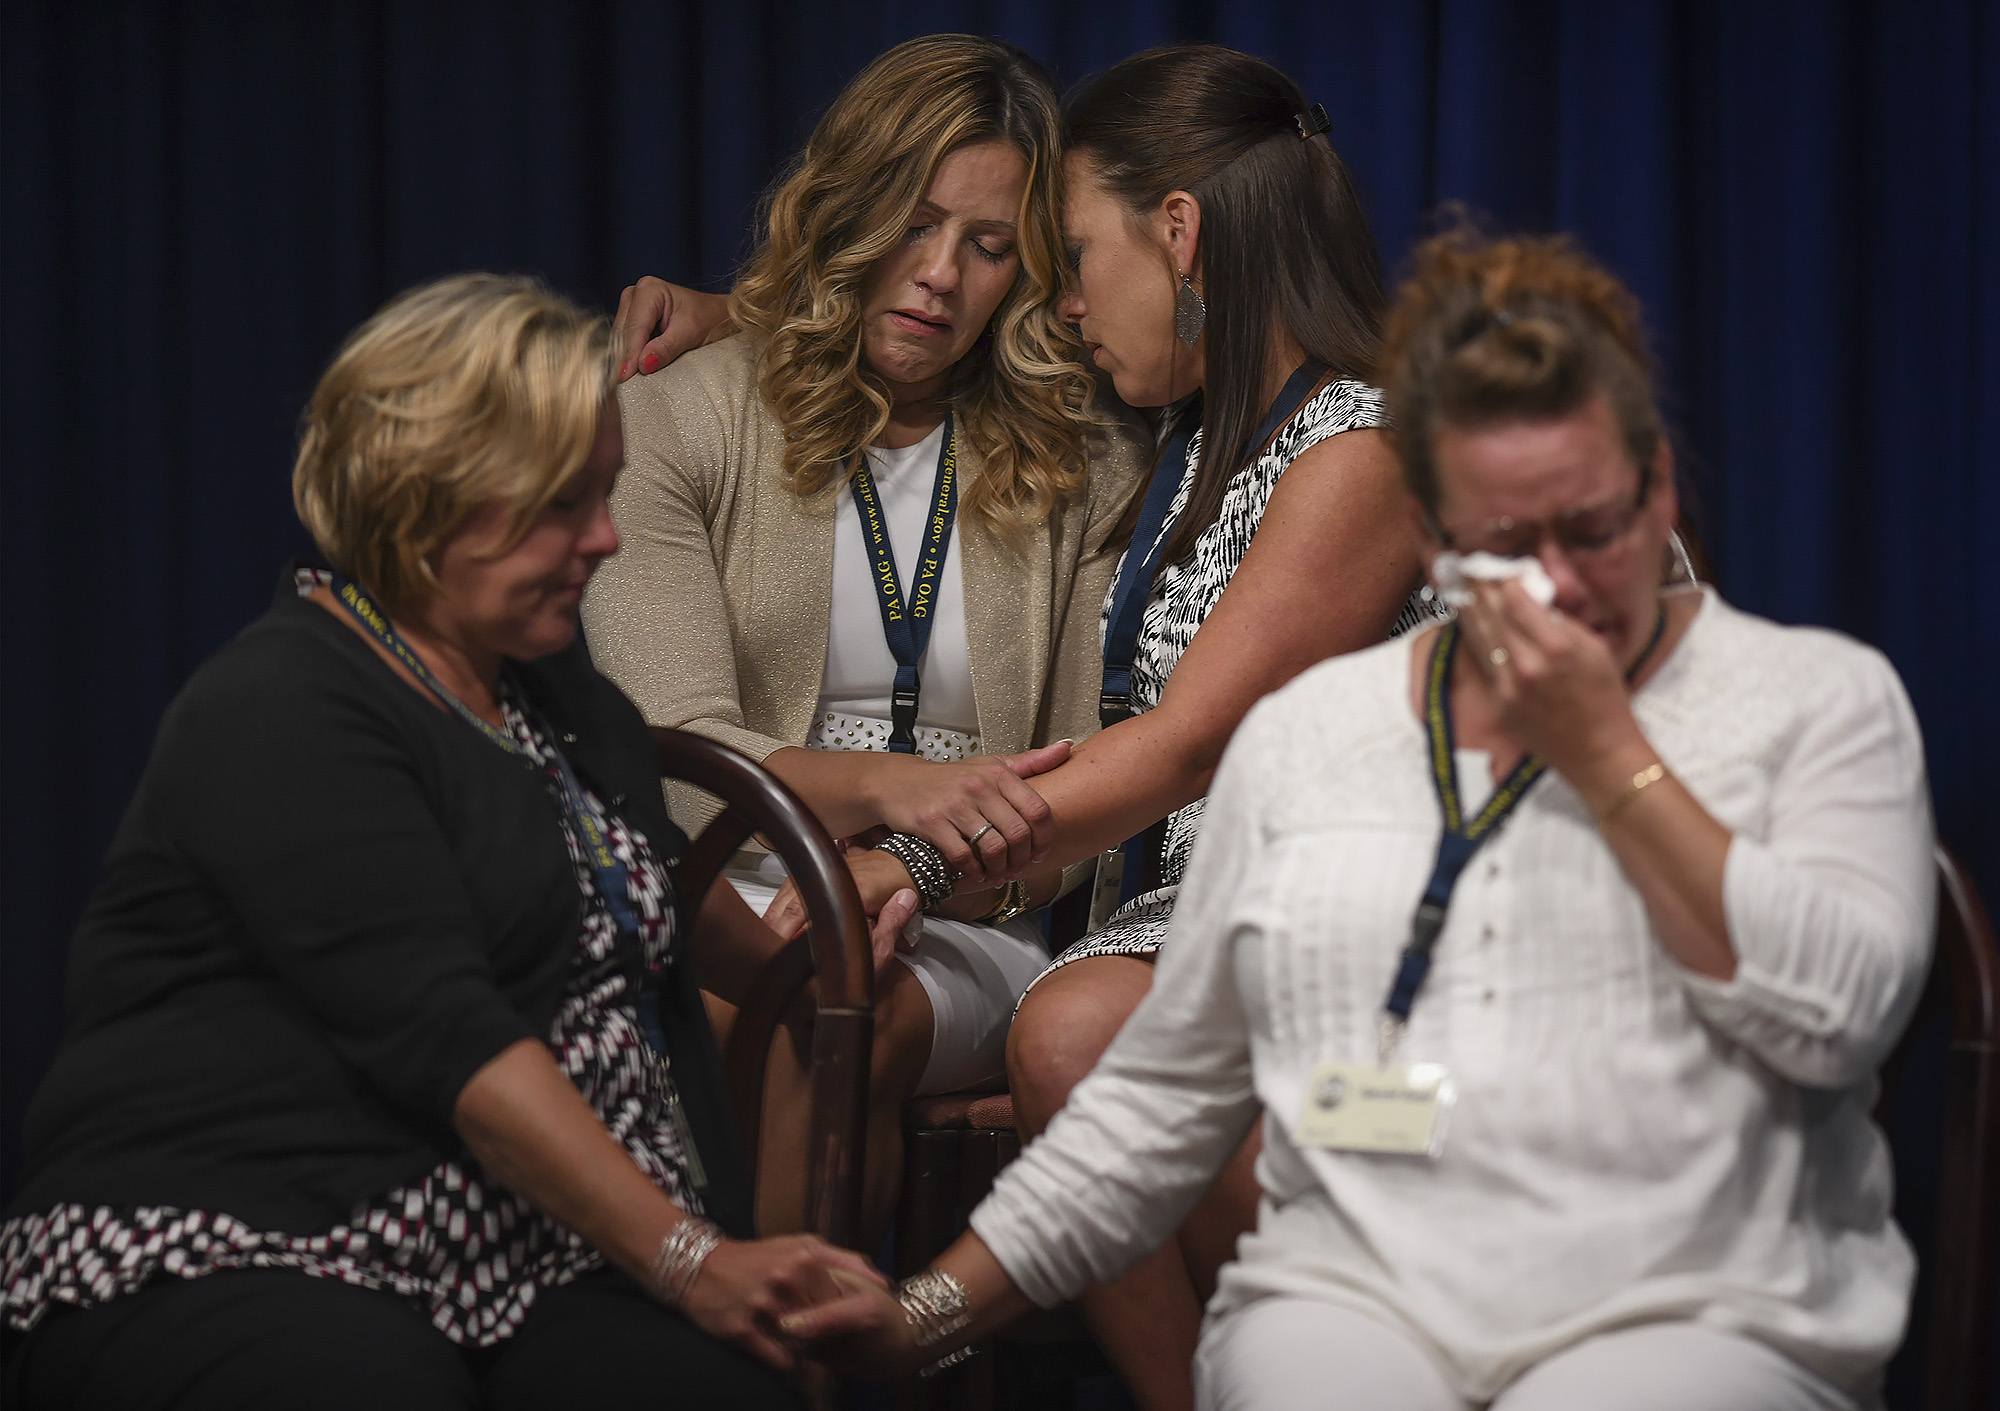 Victims of clergy sexual abuse comfort each other during a press conference detailing seven decades of abuse and cover-up in Pennsylvania.